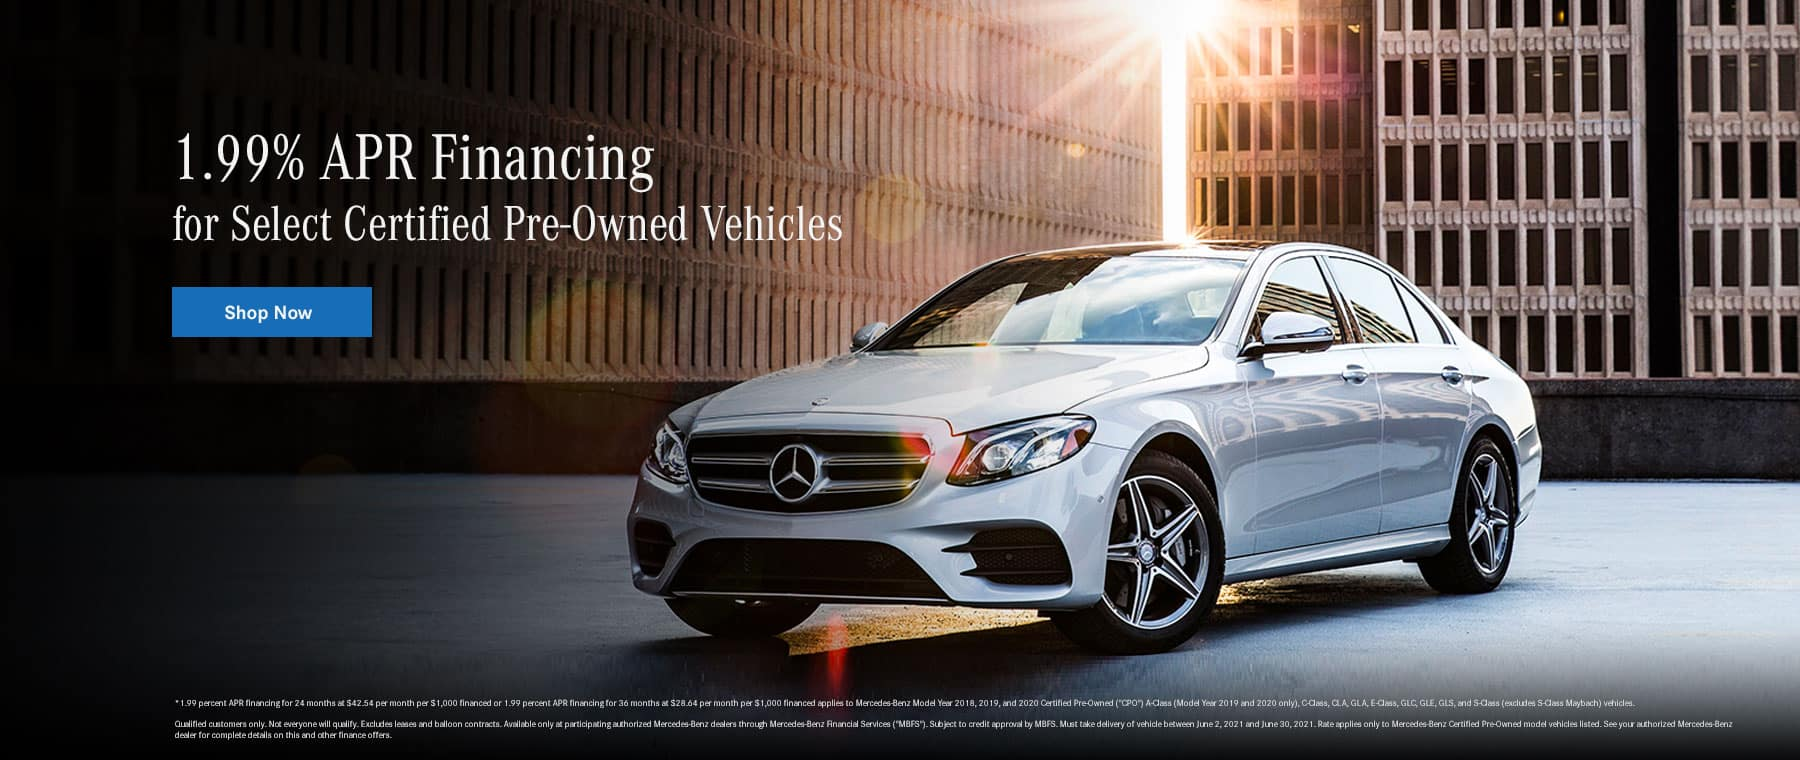 1.99% for Select Certified Pre-Owned Vehicles